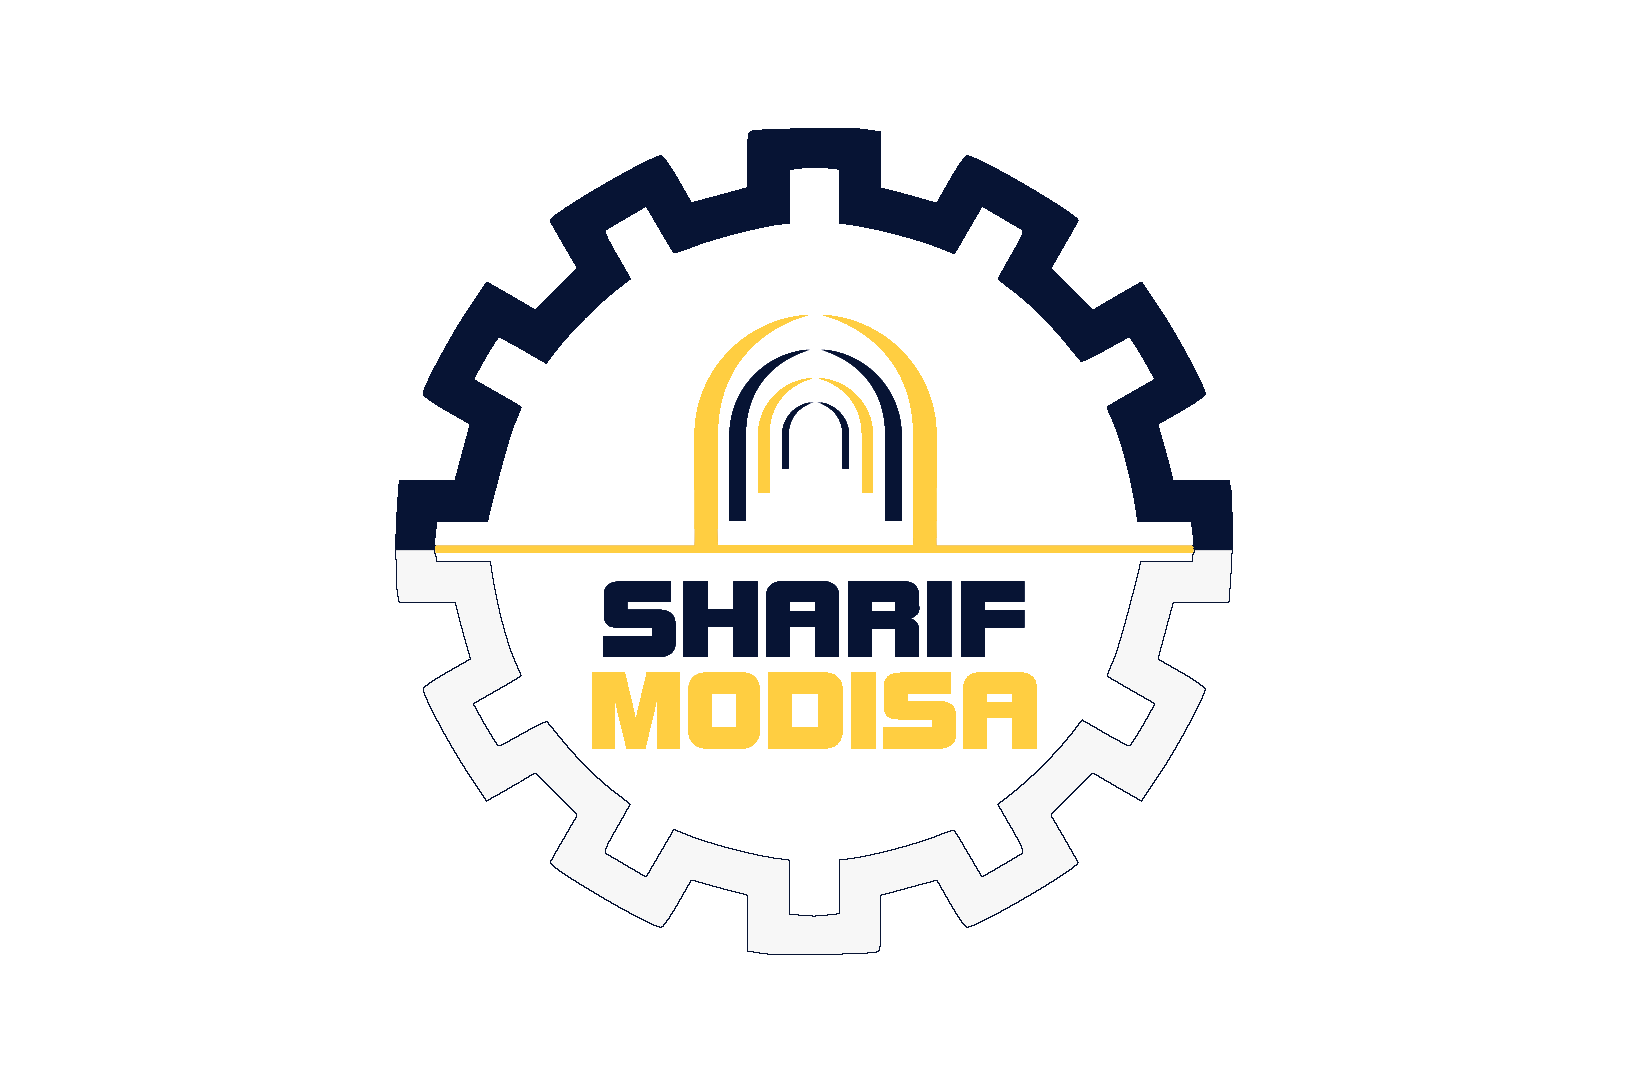 Sharif Modisa Logo New Stroked